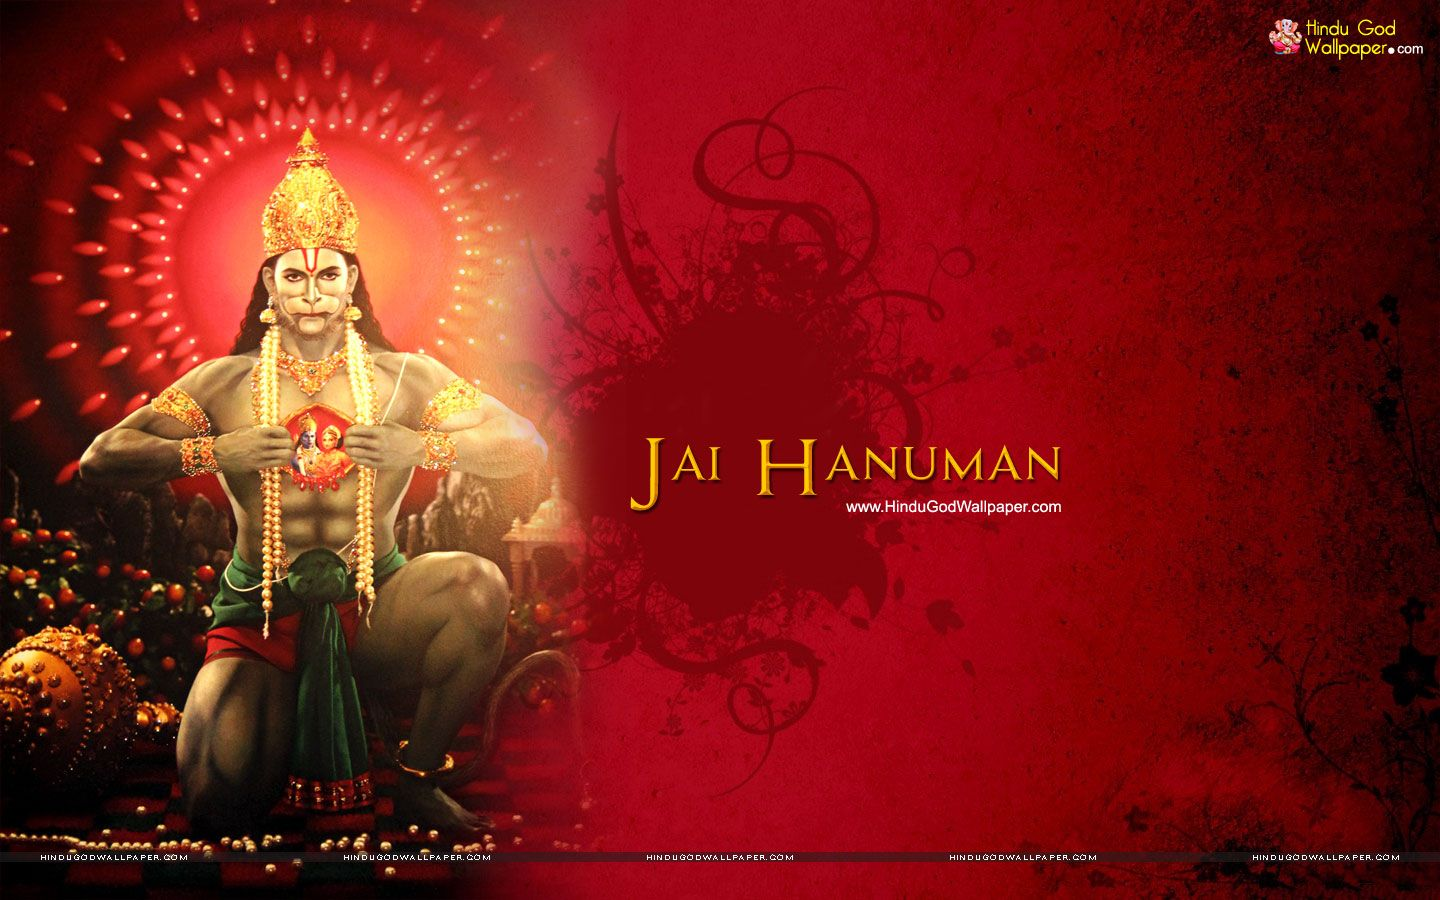 Angry Hanuman Photos Images Pics and Wallpapers Lord Hanuman 1440x900